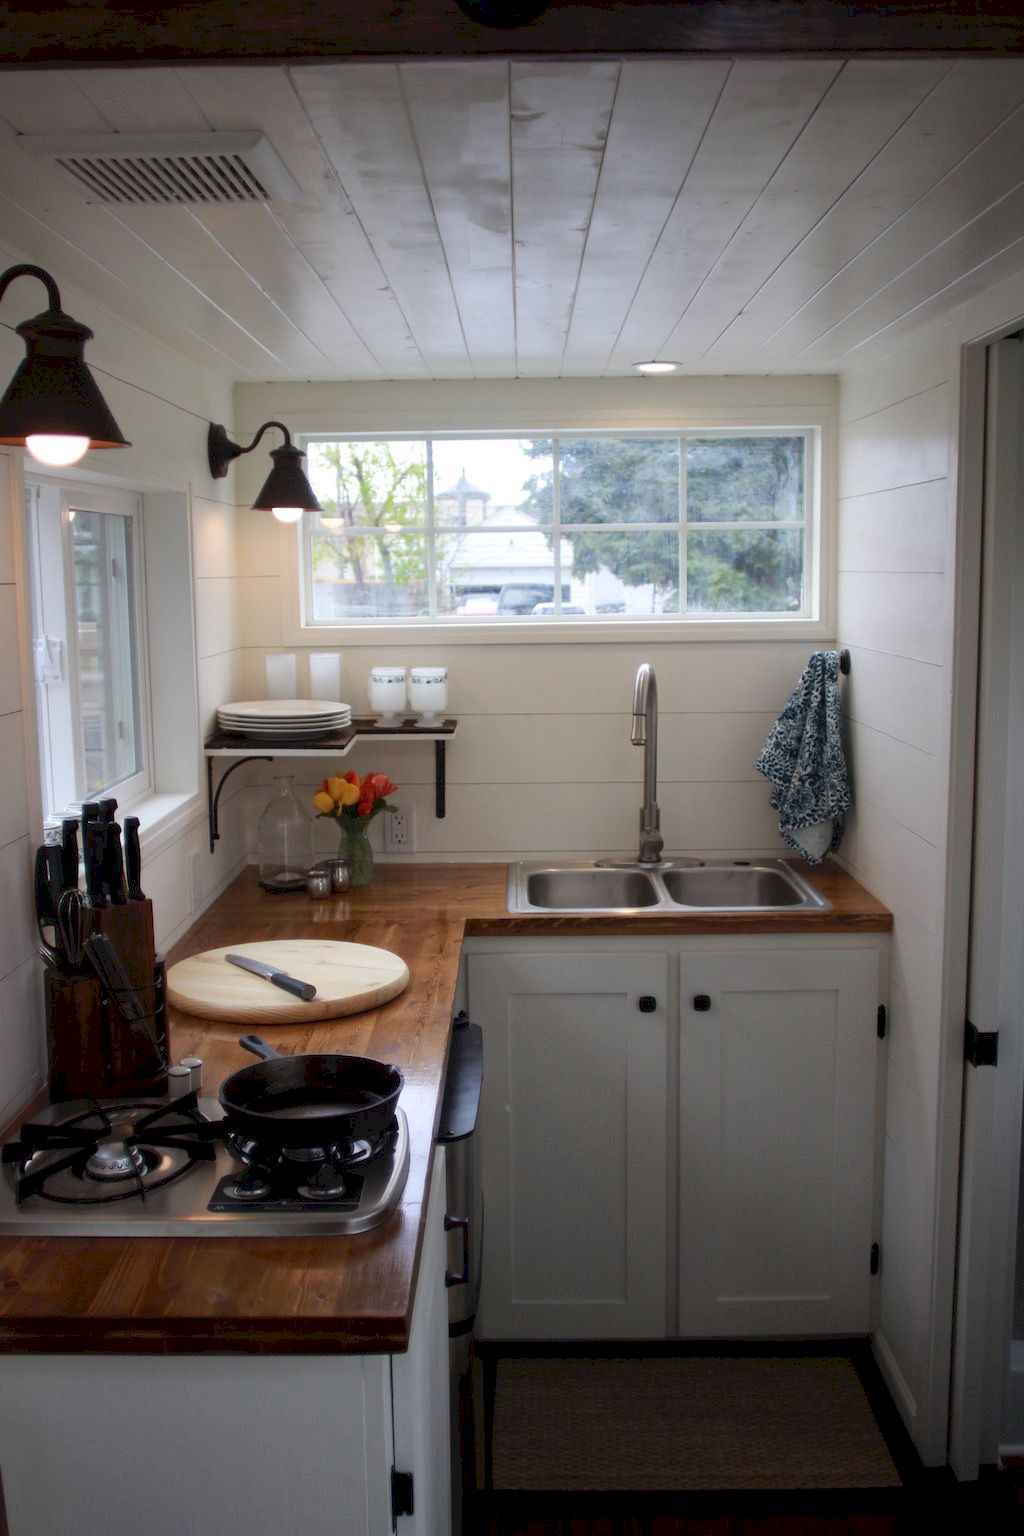 62 Tiny House Kitchen Storage Organization and Tips Ideas